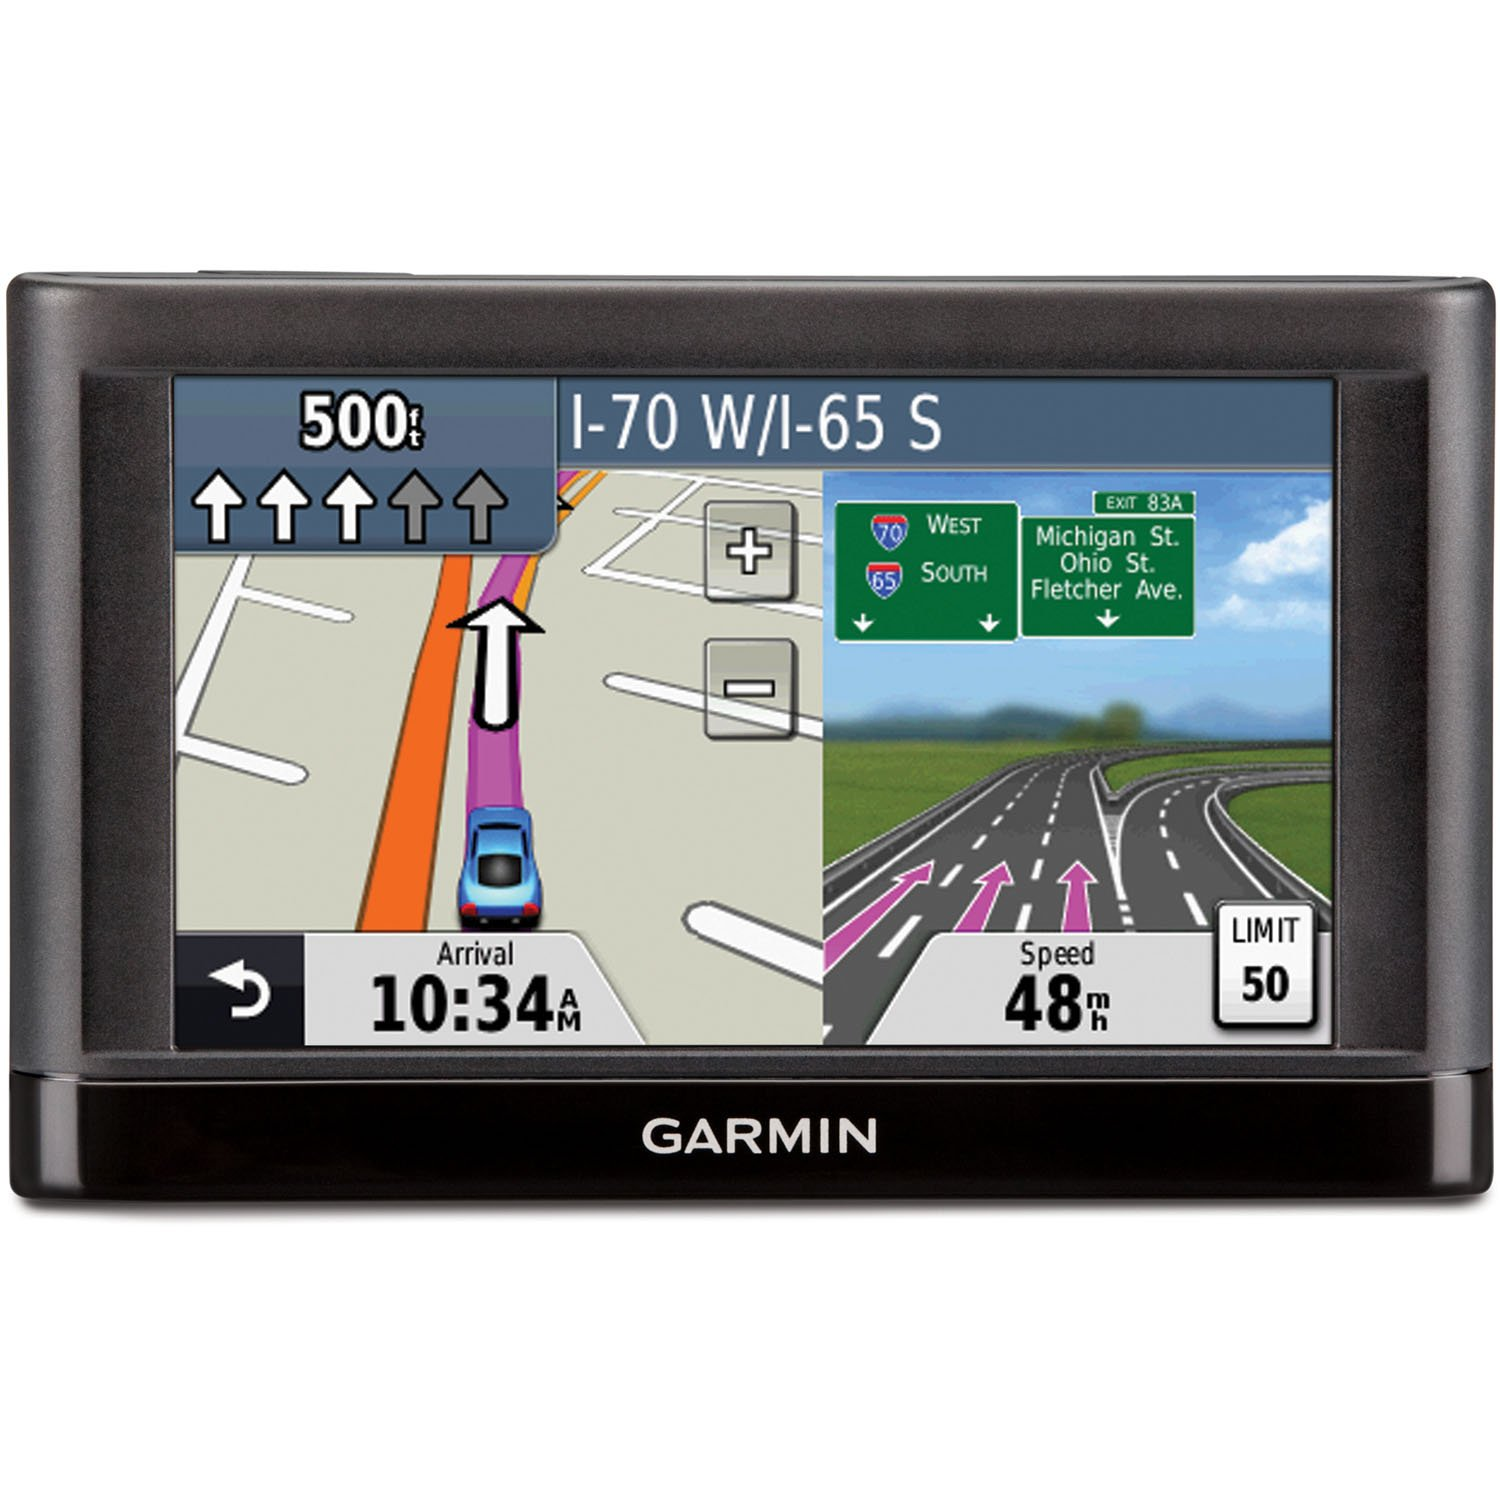 Amazoncom Garmin nvi 44LM 43Inch Portable Vehicle GPS US